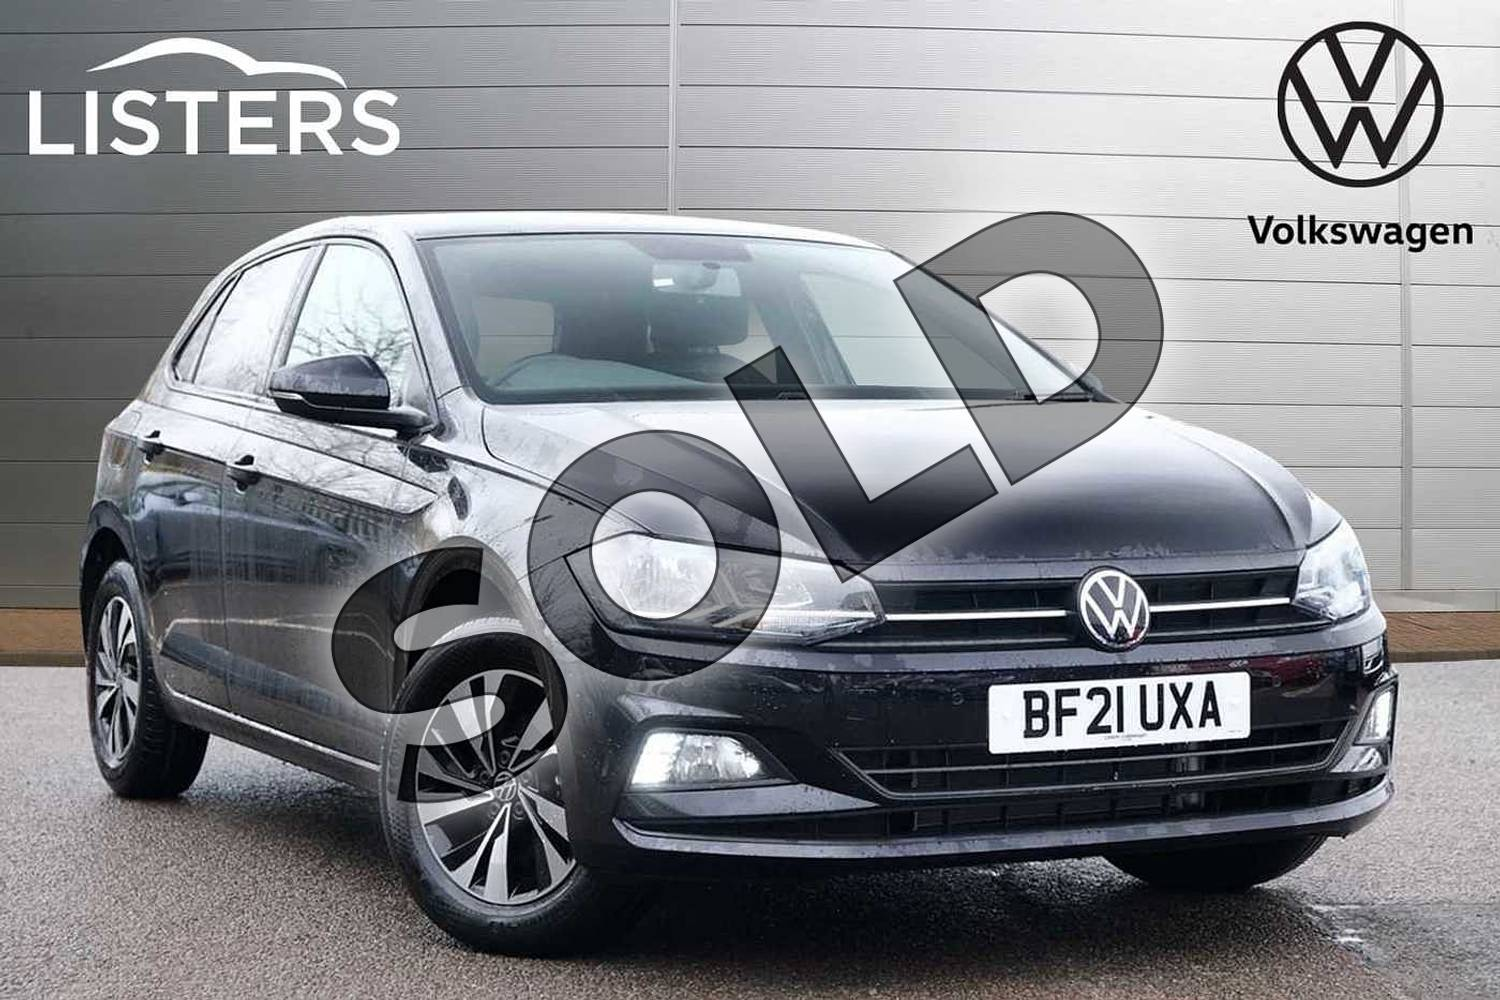 2021 Volkswagen Polo Hatchback 1.0 TSI 95 Match 5dr in Deep Black at Listers Volkswagen Leamington Spa